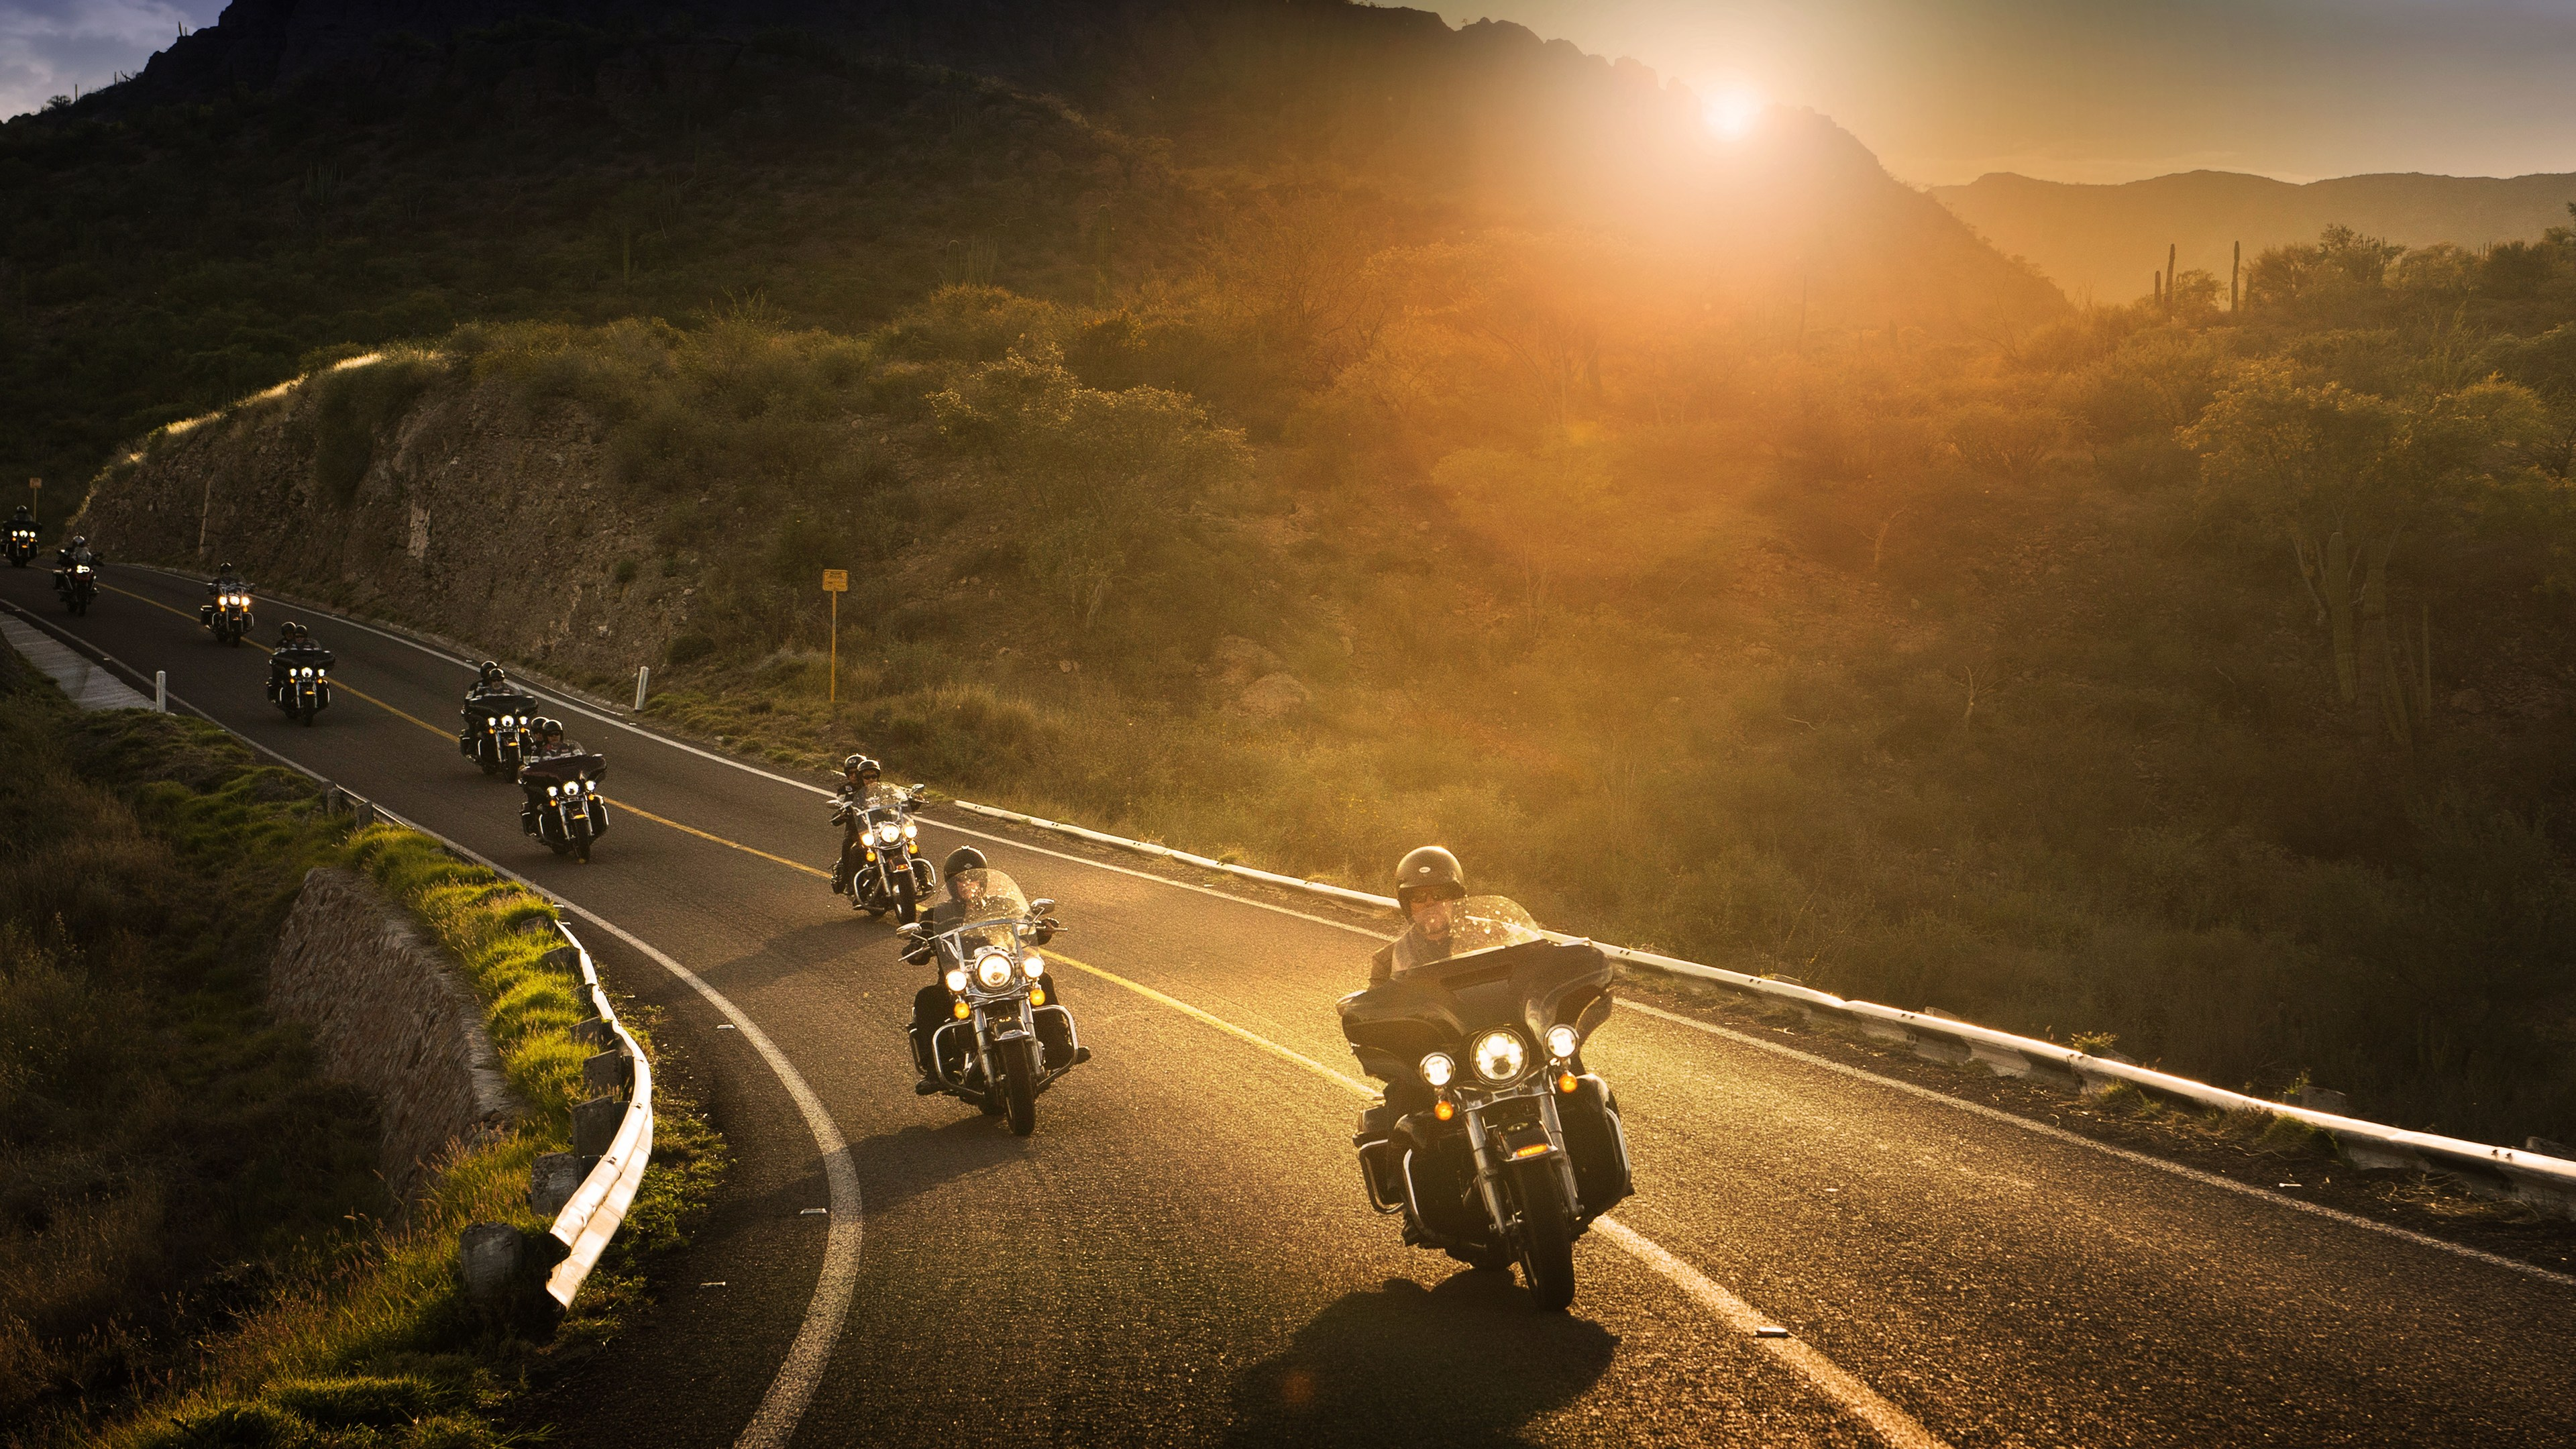 Harley Davidson Riders 8k Sunset Wallpapers, Photography